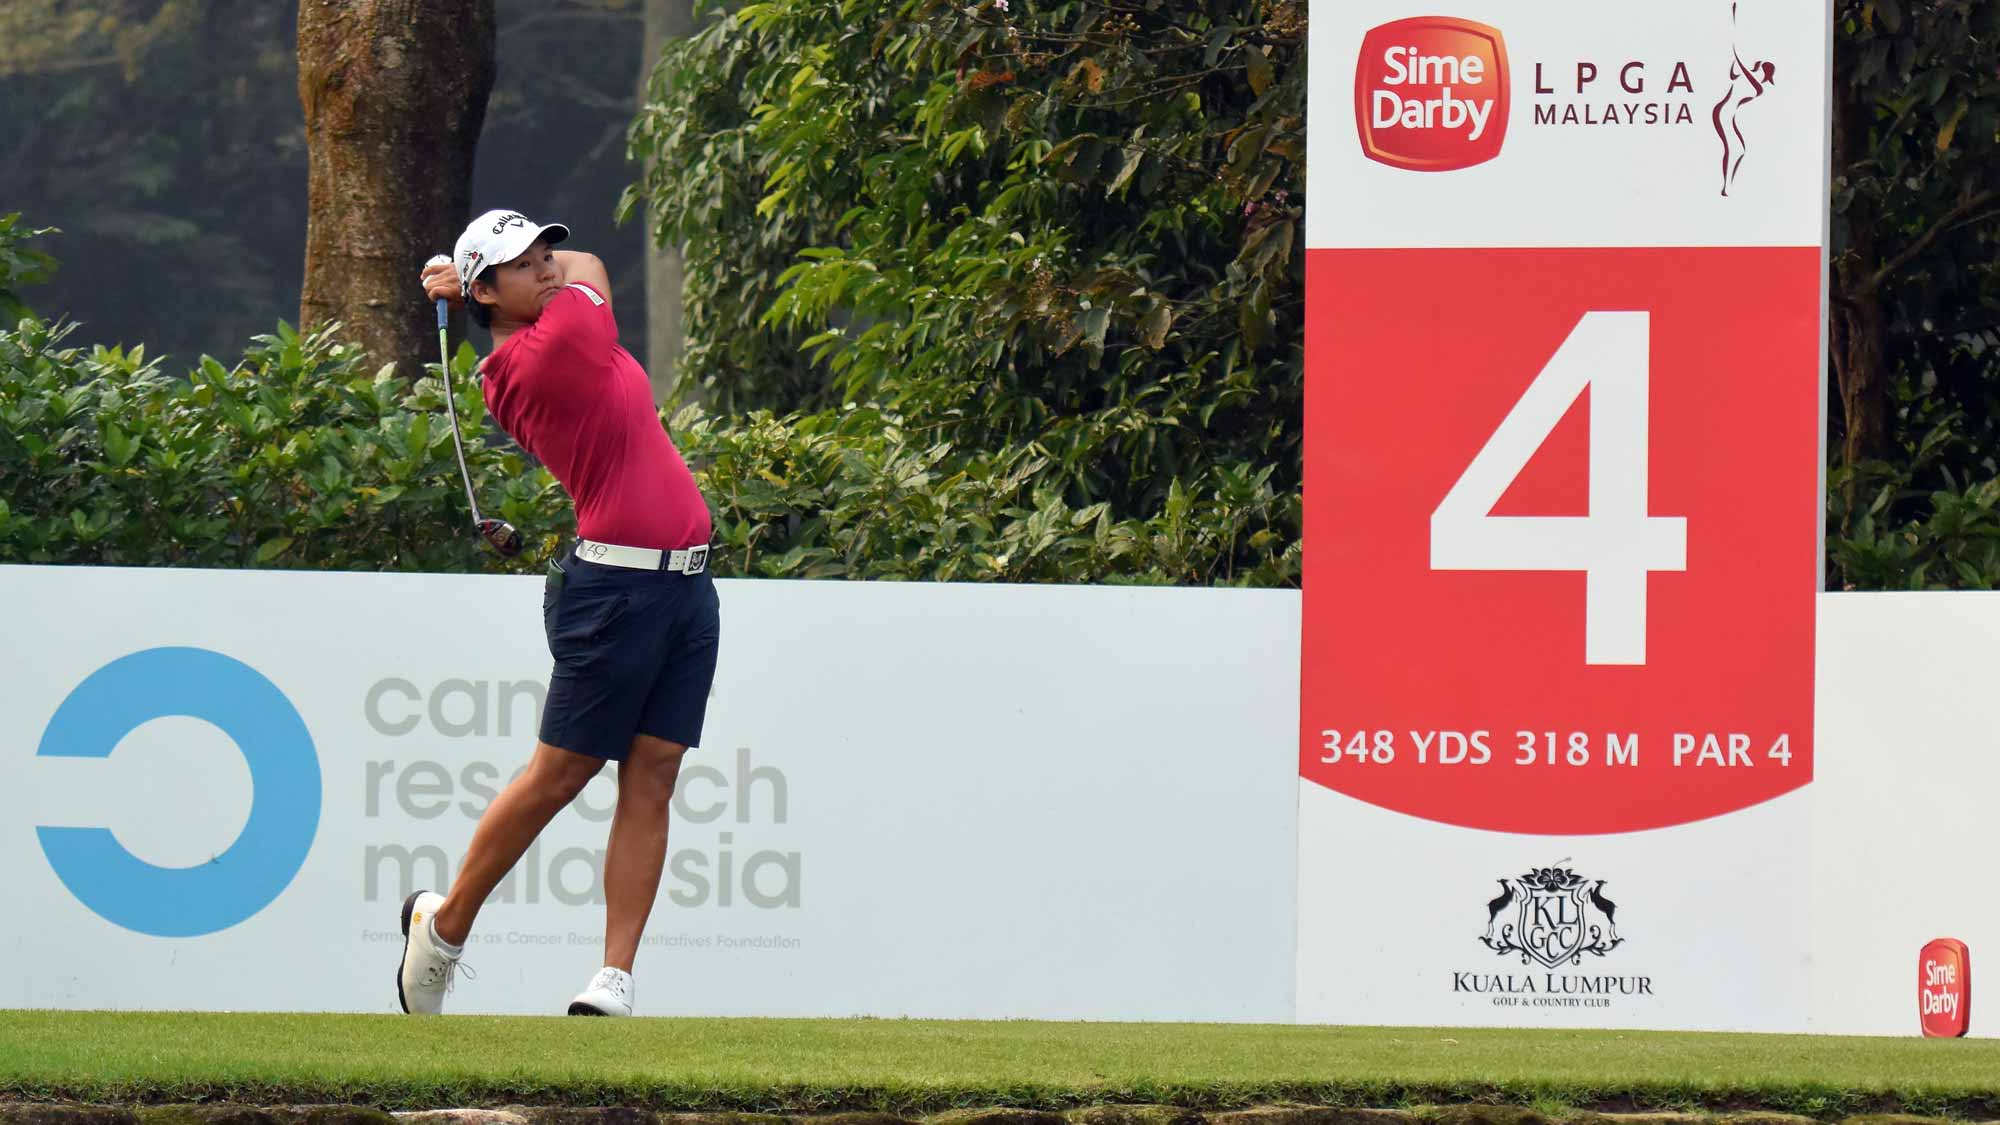 Yani Tseng of Chinese Taipei plays on the 4th hole during the final round of the Sime Darby LPGA Tour at Kuala Lumpur Golf & Country Club